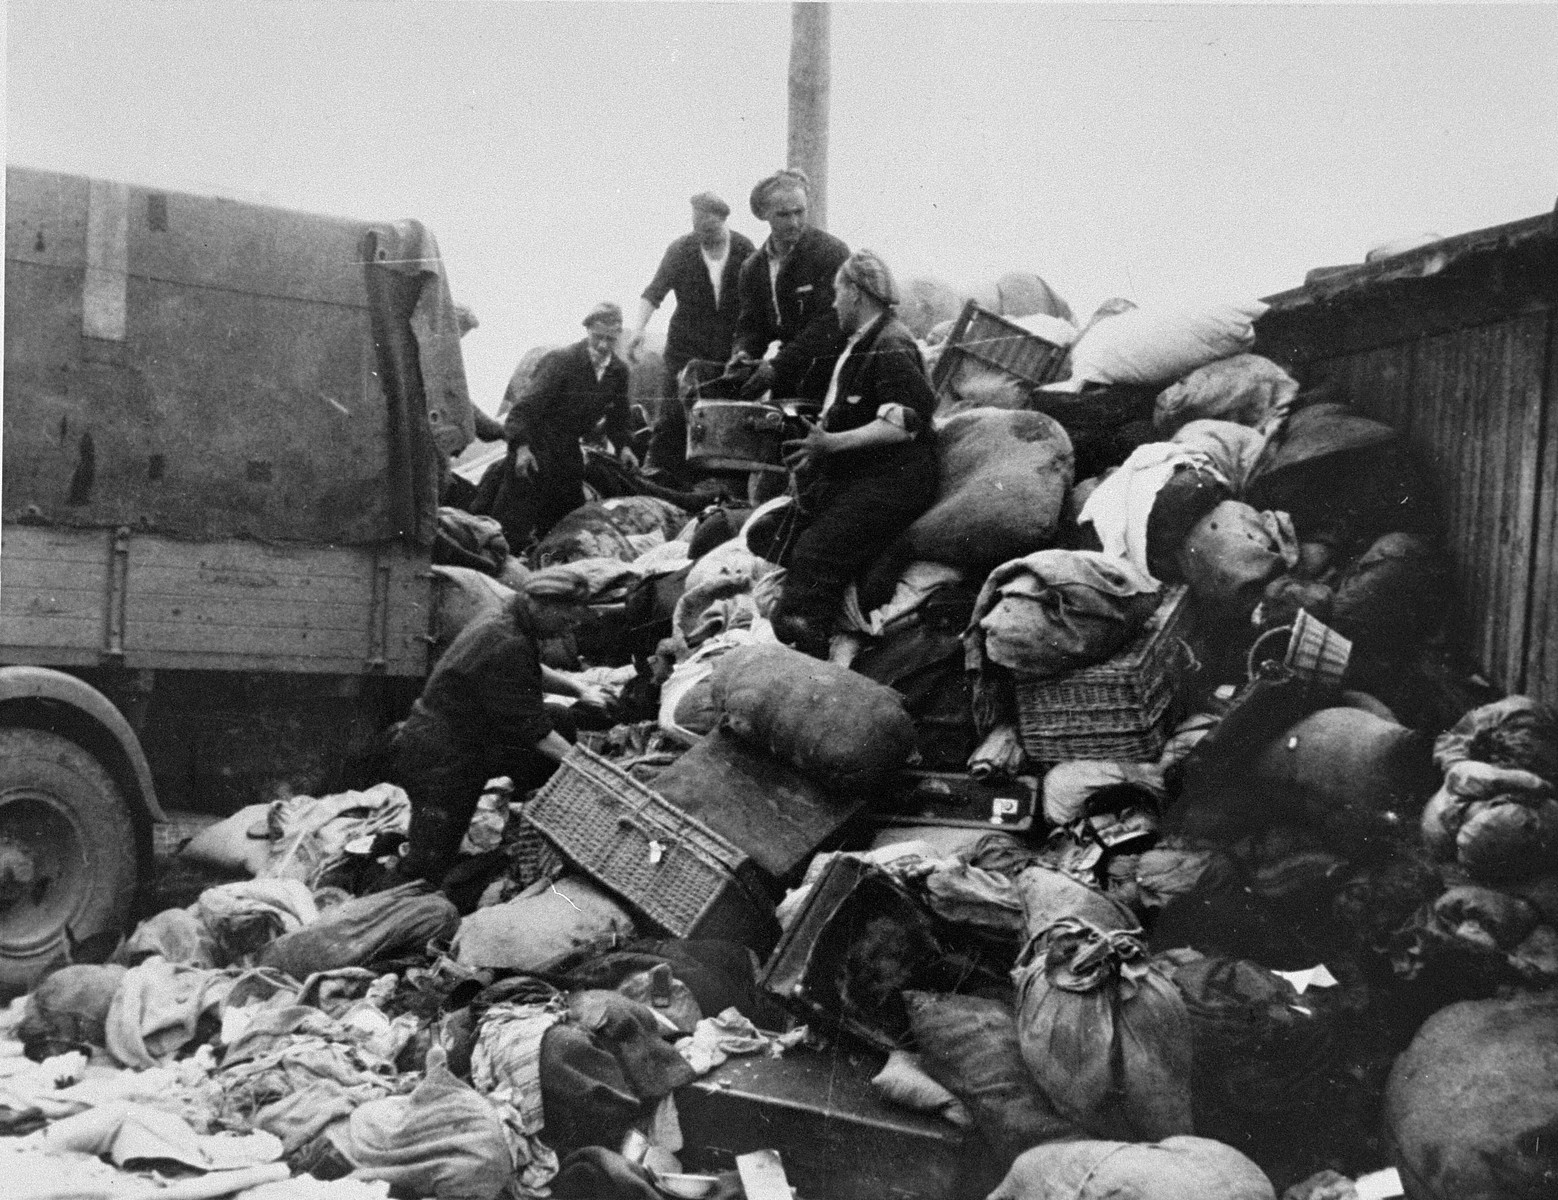 """Prisoners in the Aufräumungskommando (order commandos) unload the confiscated property of a transport of Jews from Subcarpathian Rus at a warehouse in Auschwitz-Birkenau.  Matyi (later Martin Kuban) Klein is pictured in the center.  Originally from Secovice, Czechoslovakia, Klein was reponsible for the horse and wagons used to transport prisoner belongings.  According to his family, he transported dynamite hidden in the axel of one of the wagons prior to the Auschwitz uprising.  The camp prisoners came to refer to the looted property as """"Kanada,"""" associating it with the riches symbolized by Kanada.  The members of this commando were almost exclusively Jews.  """"Kanada"""" storage facilities occupied several dozen barracks and other buildings around the camp.  The looted property was funneled from Auschwitz through an extensive distribution network that served many individuals and various economic branches of the Third Reich."""